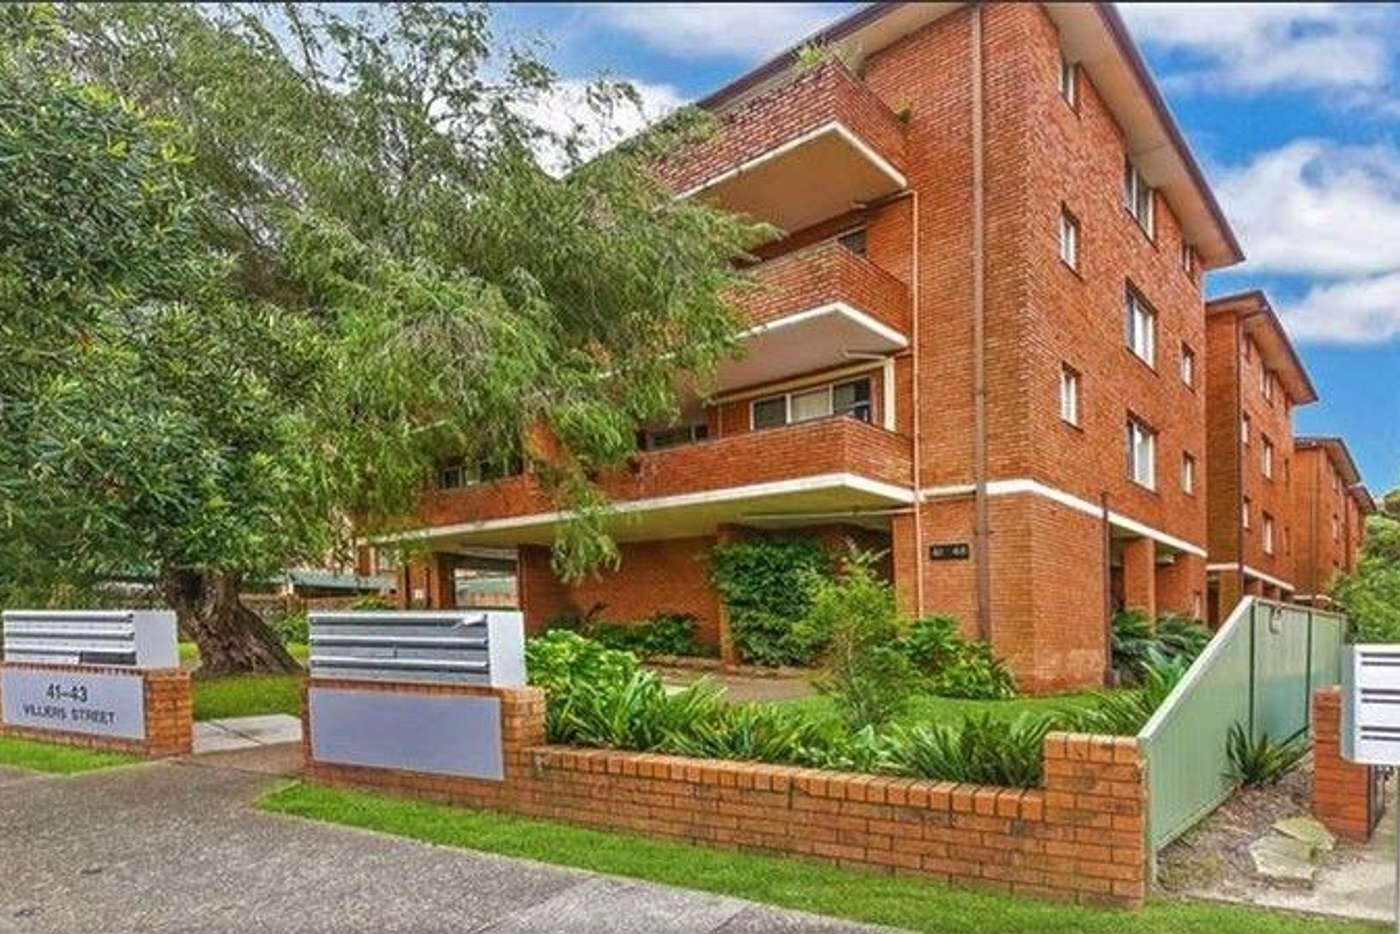 Main view of Homely unit listing, 21/43 Villiers Street, Rockdale NSW 2216